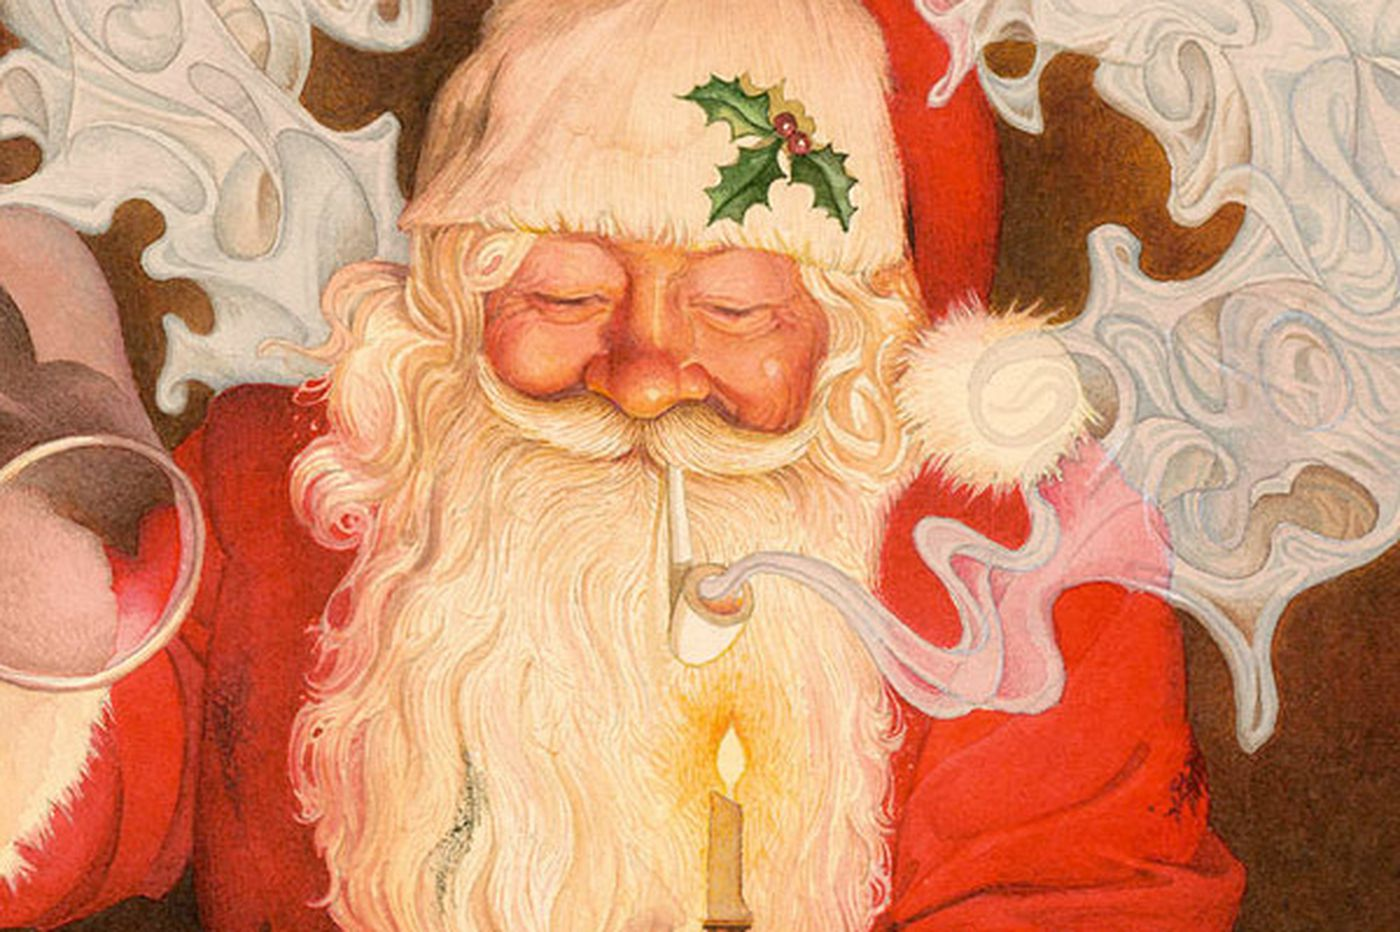 'Twas the Night that Santa gave up his pipe